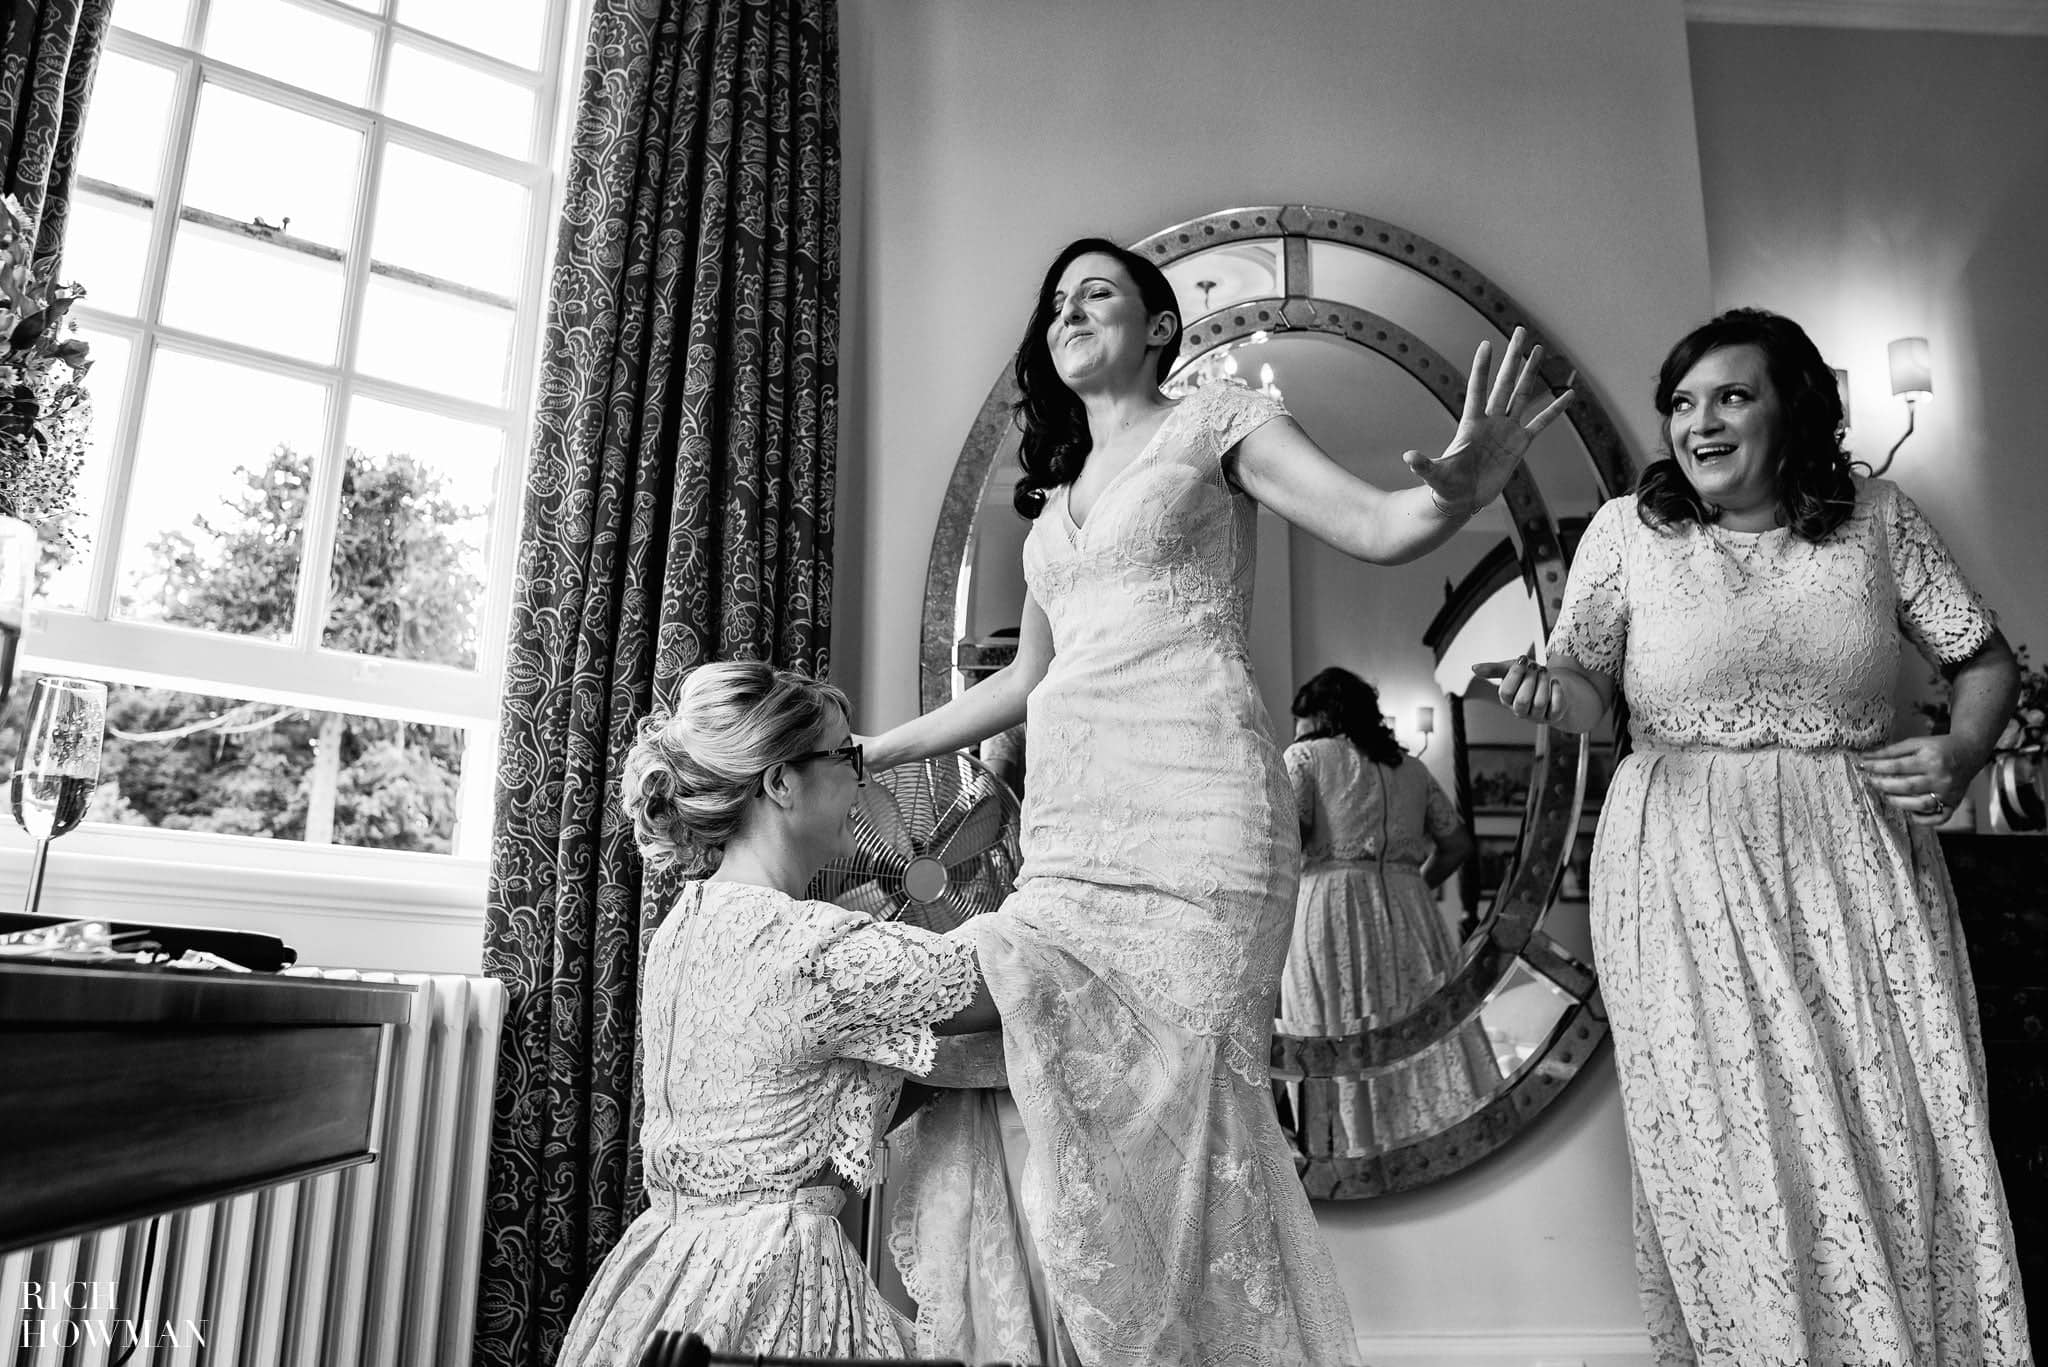 Funny black and white photo of the bride getting her dress on